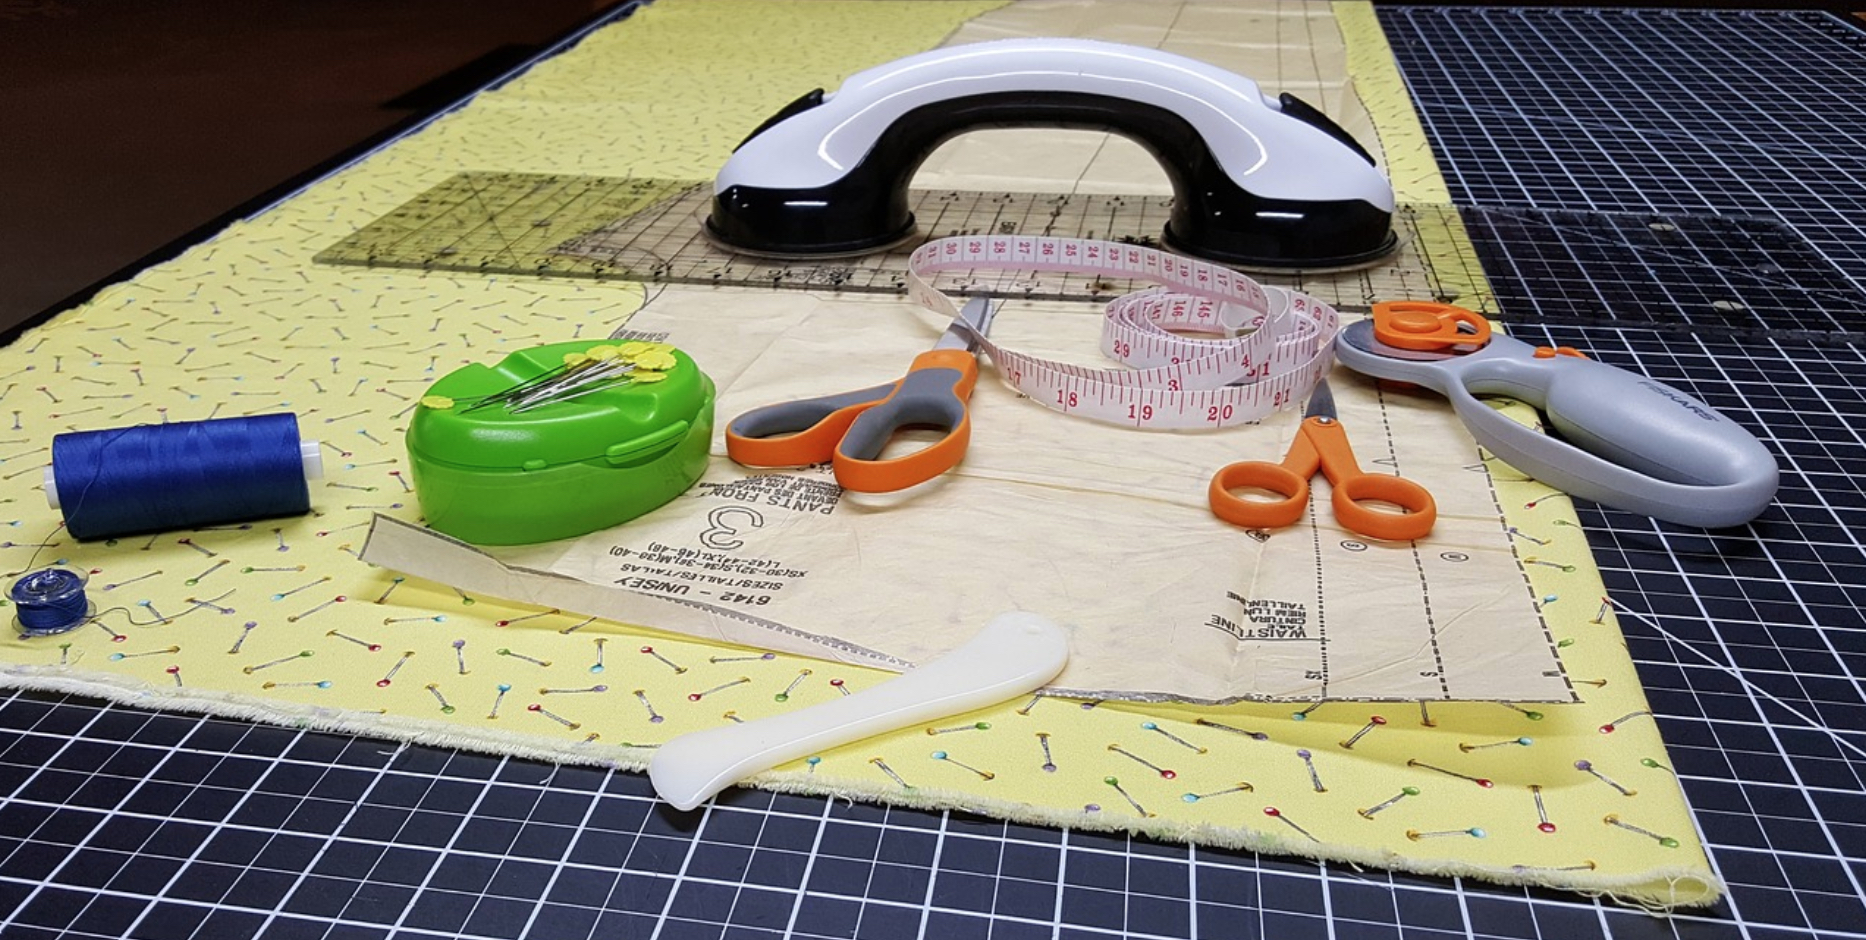 Rotary cutter with fabric and sewing equipment